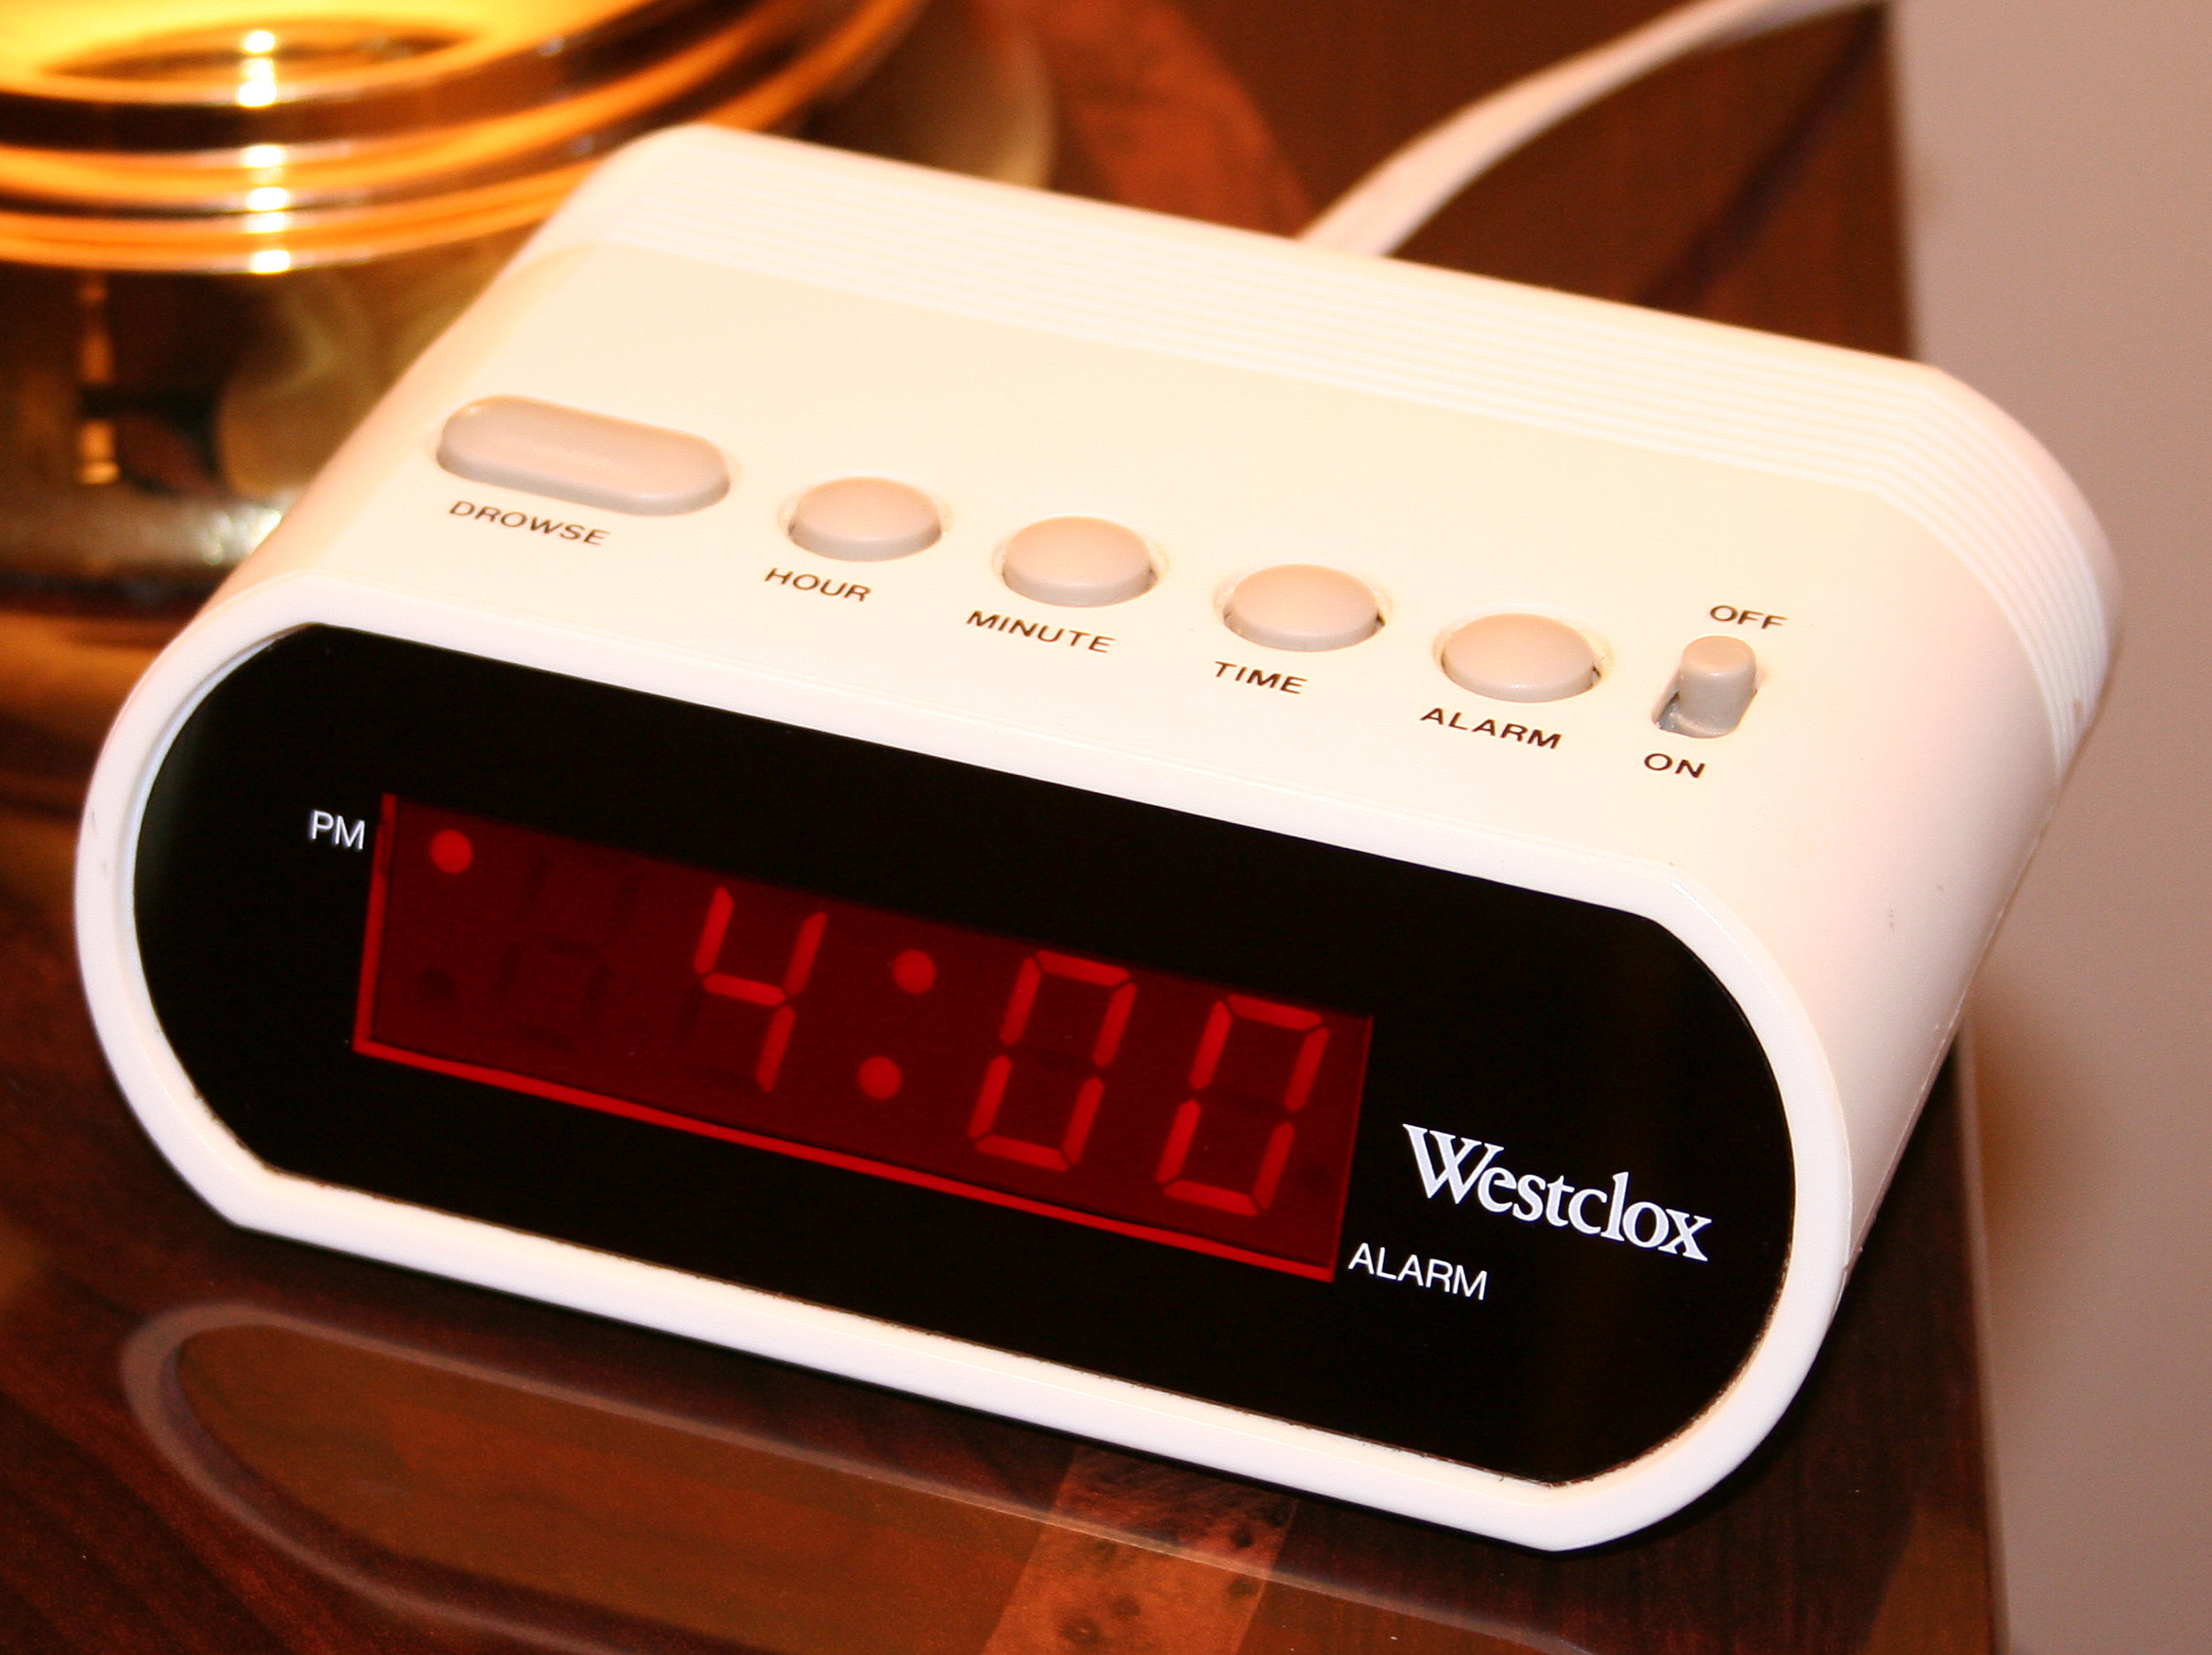 File:Digital-clock-alarm.jpg - Wikipedia, the free encyclopedia